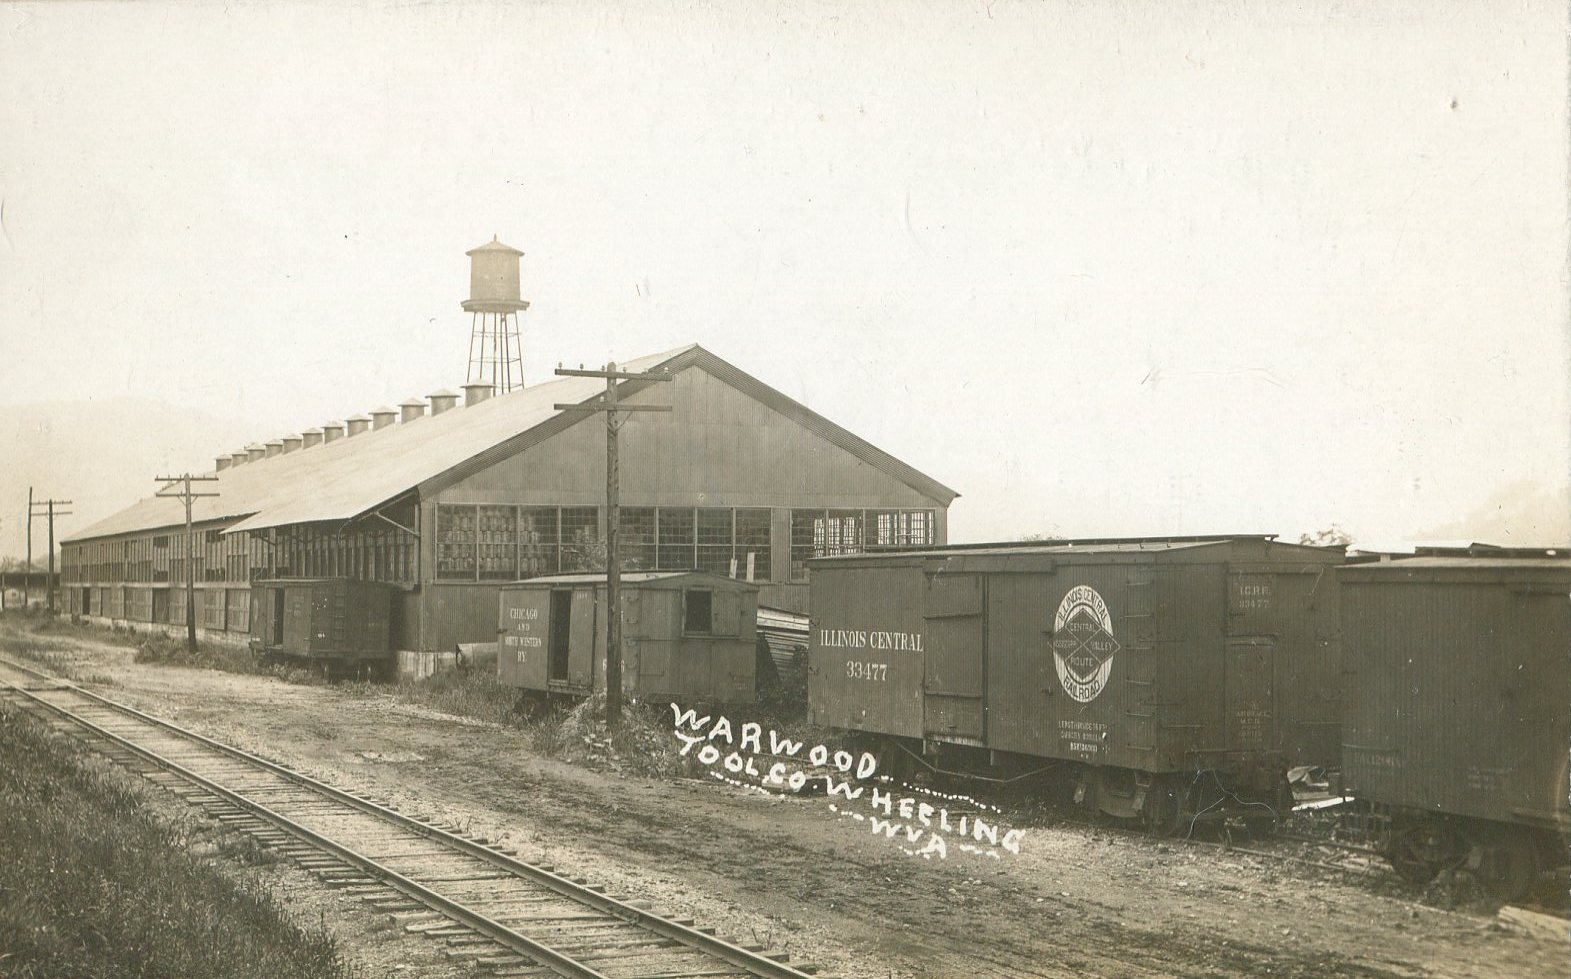 Warwood Tool Company, undated, photo courtesy of Sandra Mauck. Note the B&O Railroad tracks that ran past the factory.